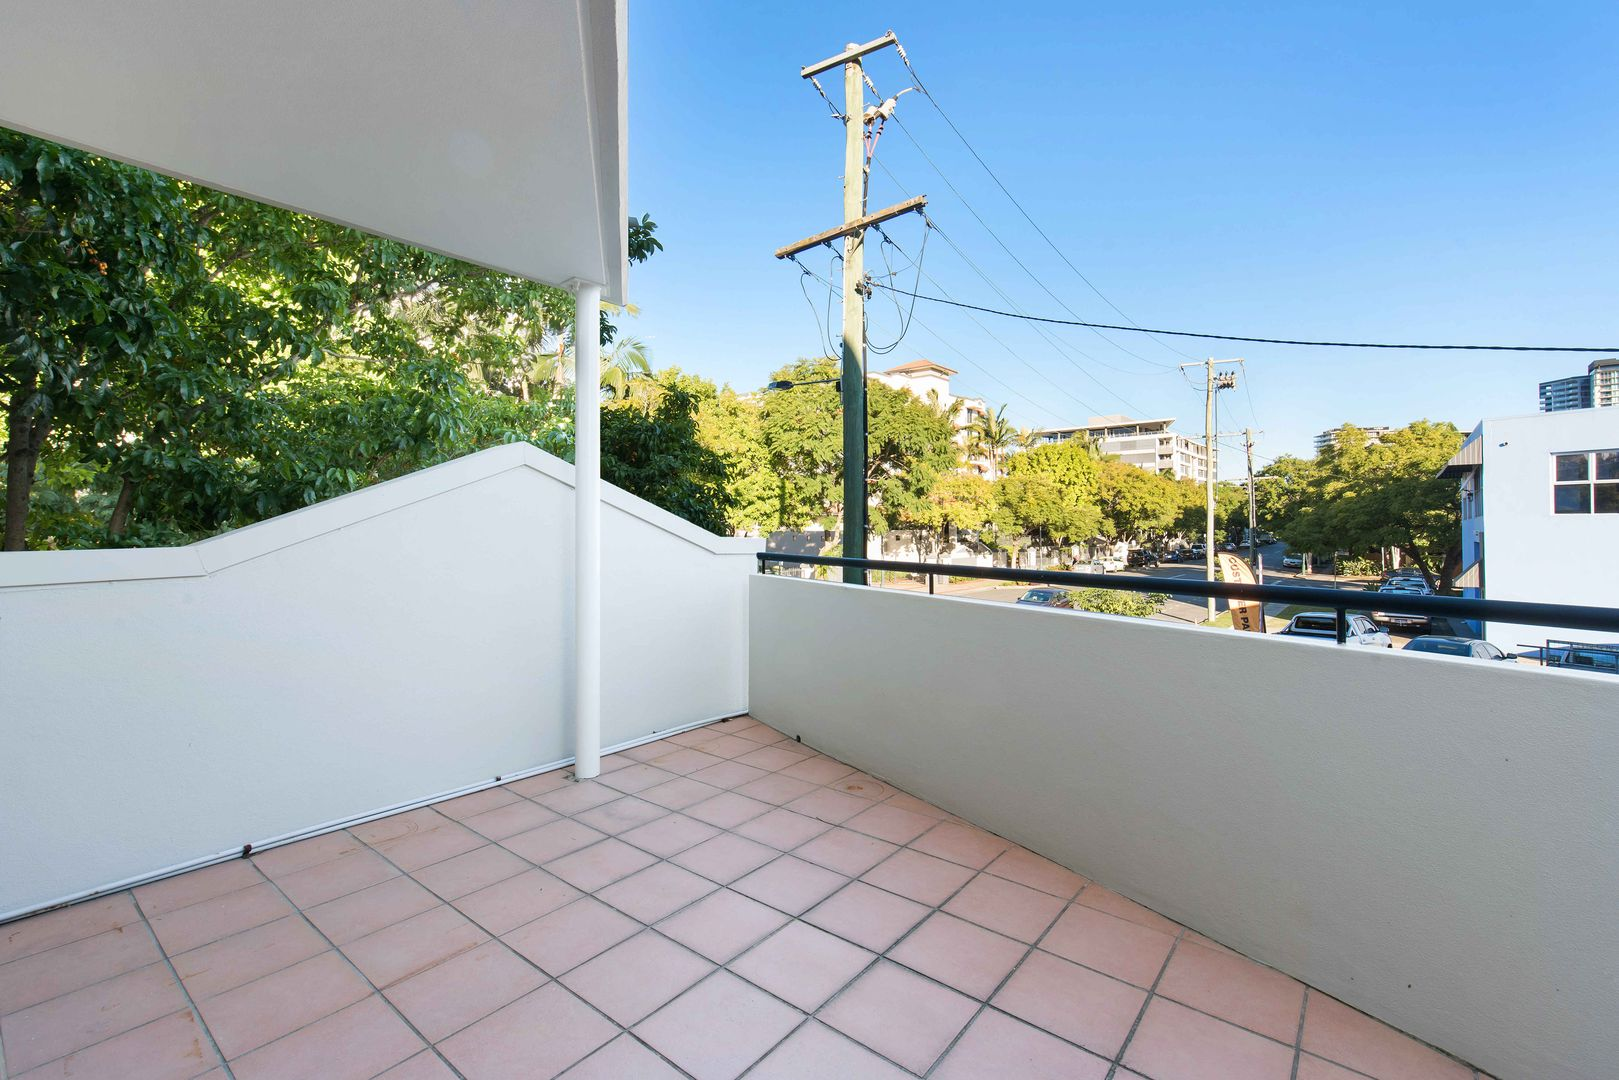 1/32 Newstead Terrace, Newstead QLD 4006, Image 2